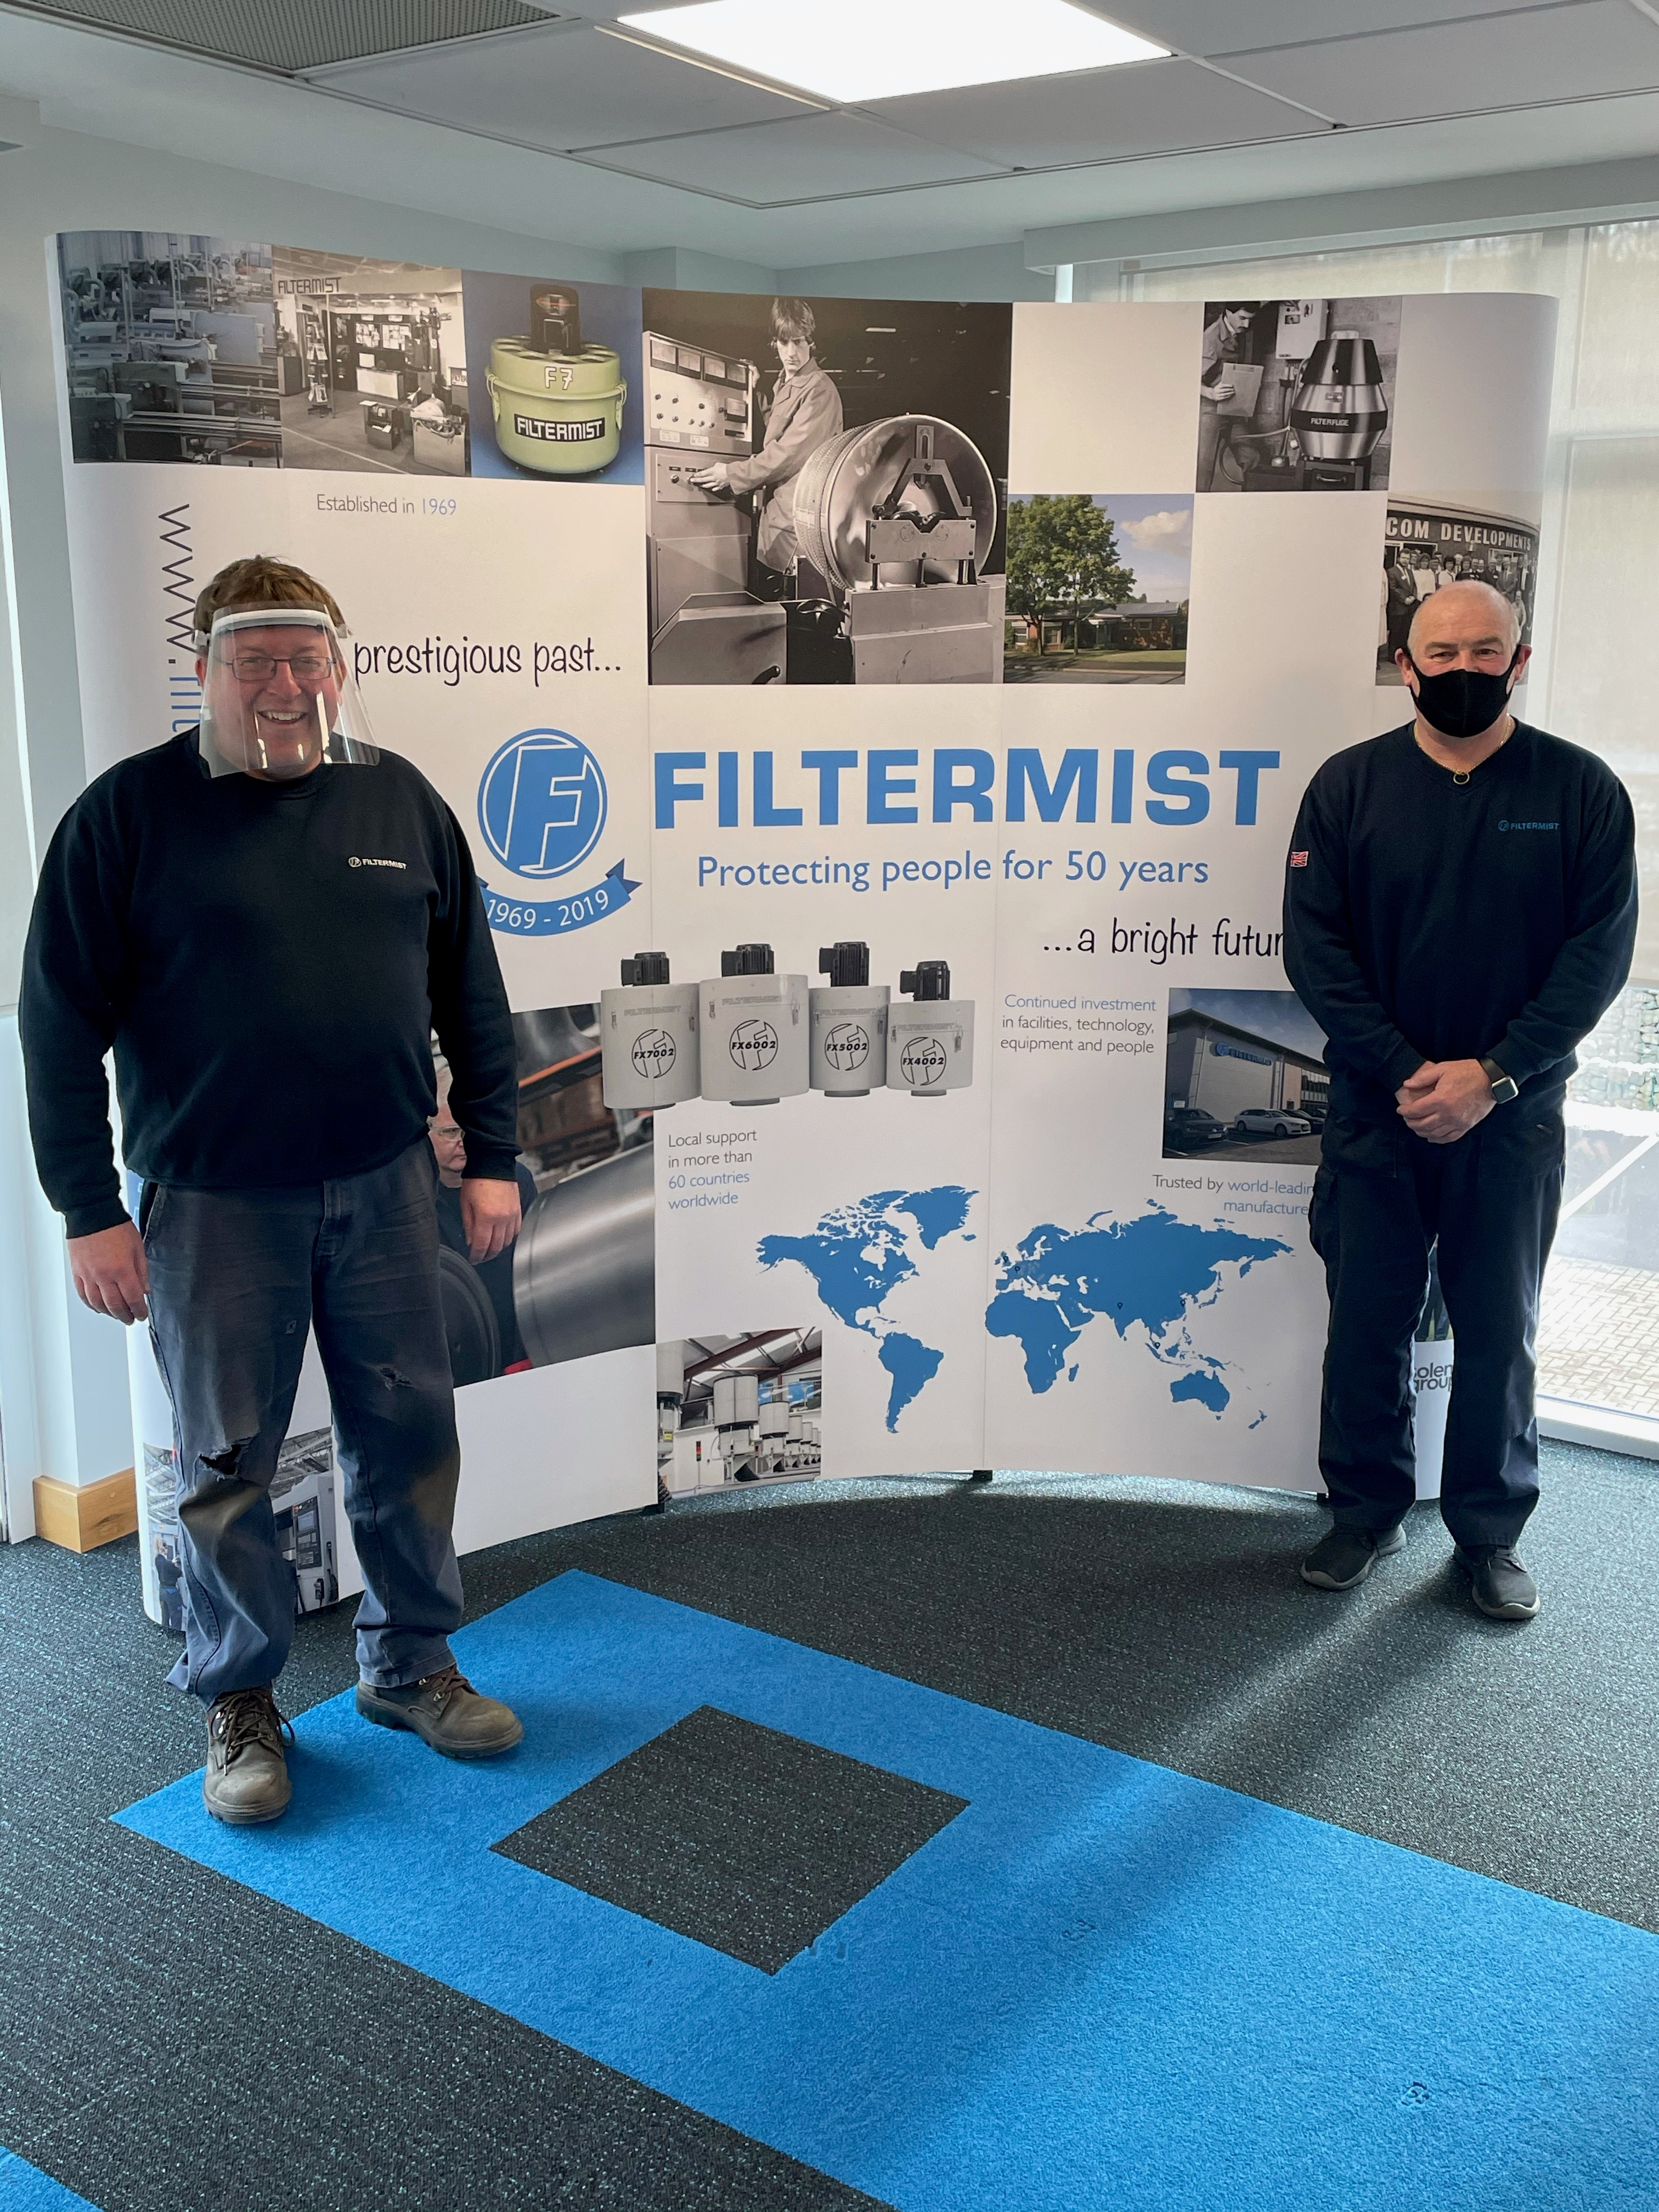 25-year milestone for two Filtermist colleagues